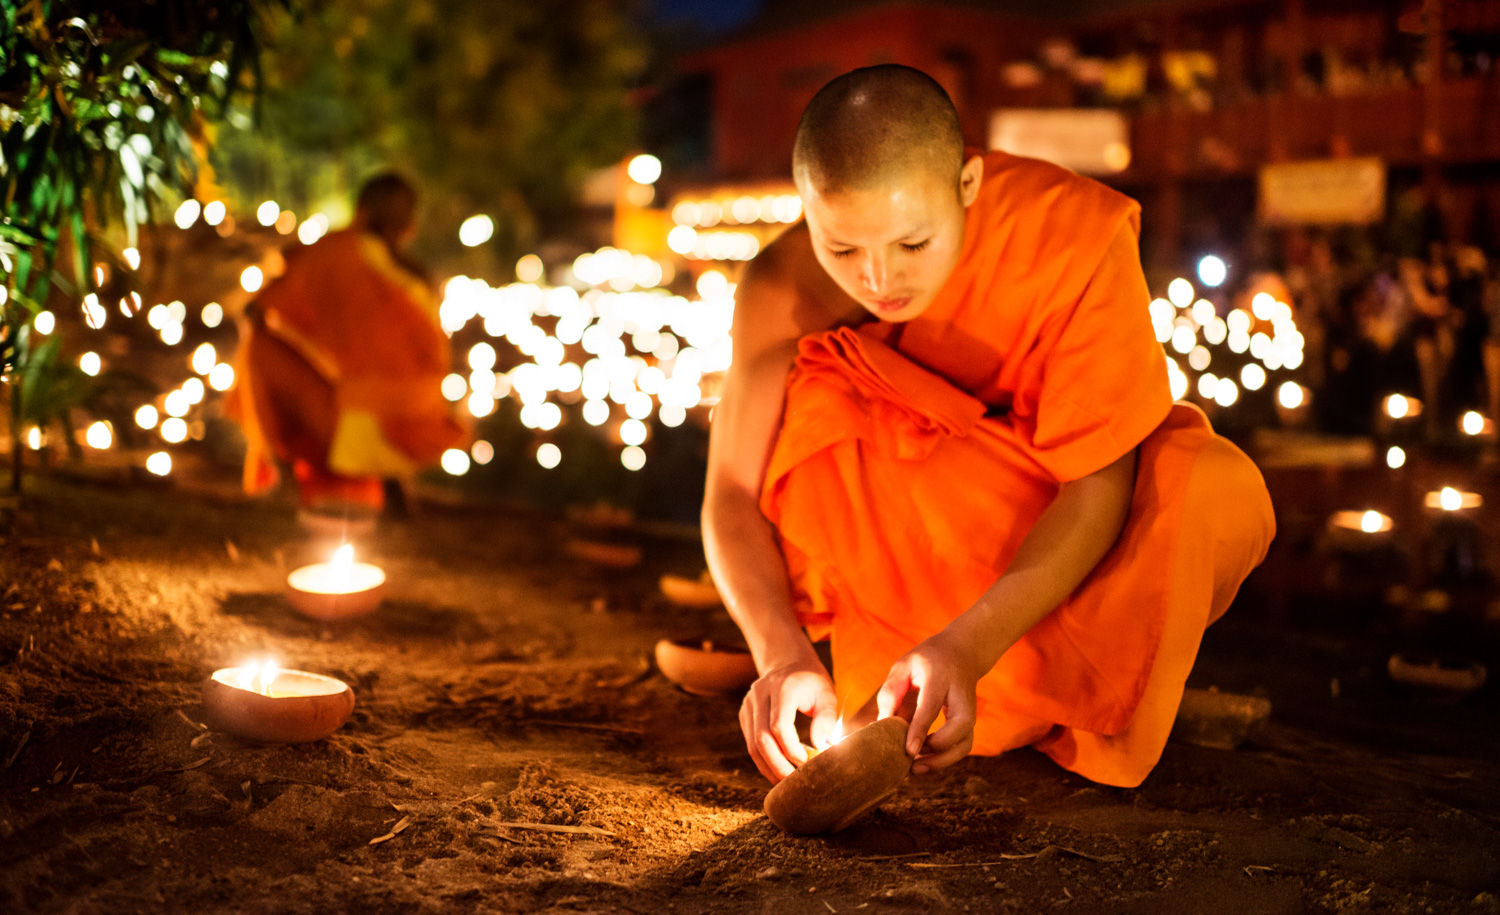 Buddhist monk lighting a candle during a night ceremony in Chiang Mai, Thailand -  7 Steps to Find Inspiration so You Can Create Phenomenal Photographs